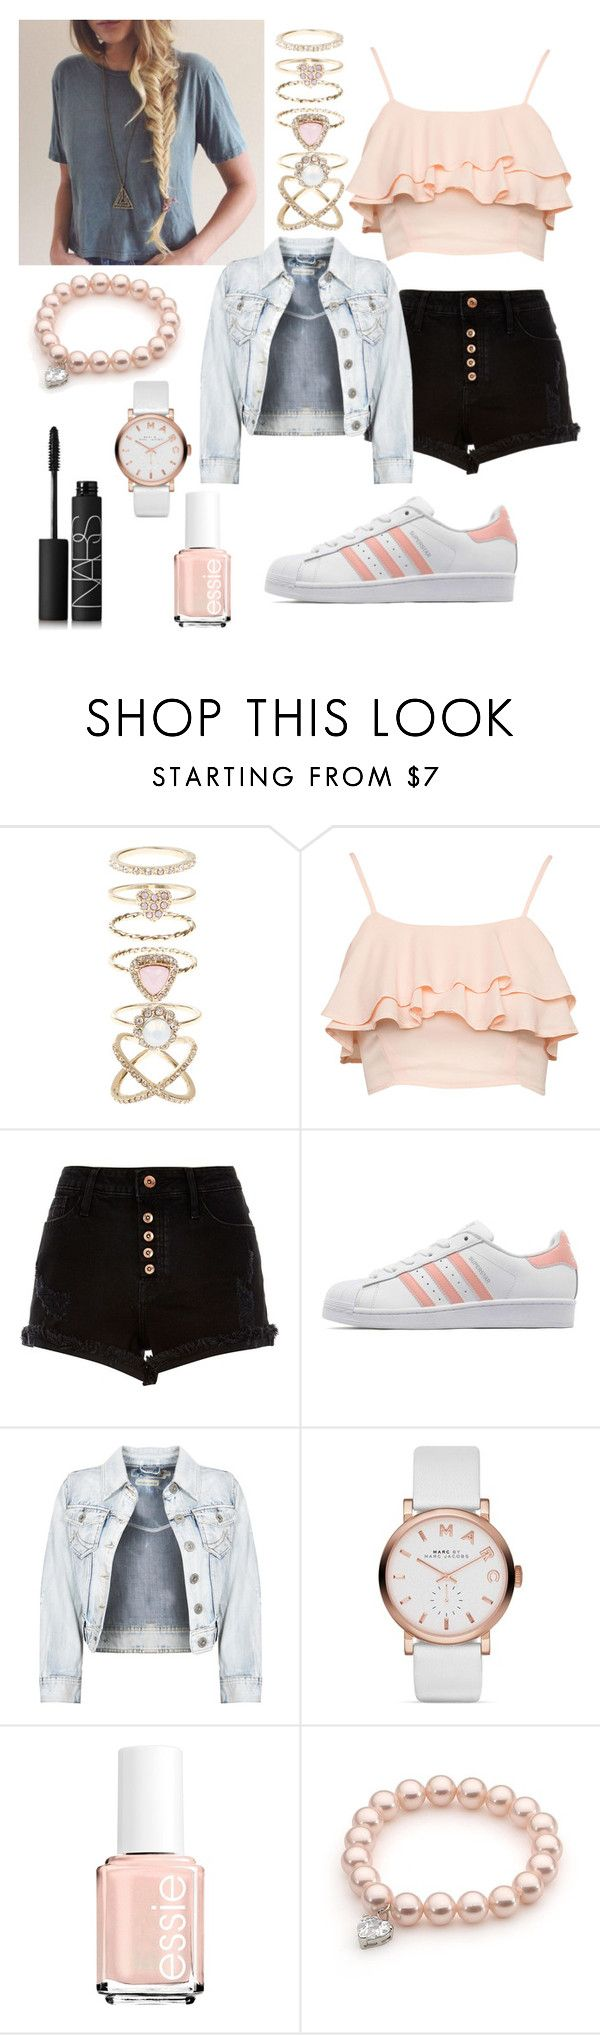 """Untitled #98"" by jessica21-07 ❤ liked on Polyvore featuring Accessorize, River Island, adidas Originals, Marc Jacobs, Essie and NARS Cosmetics"